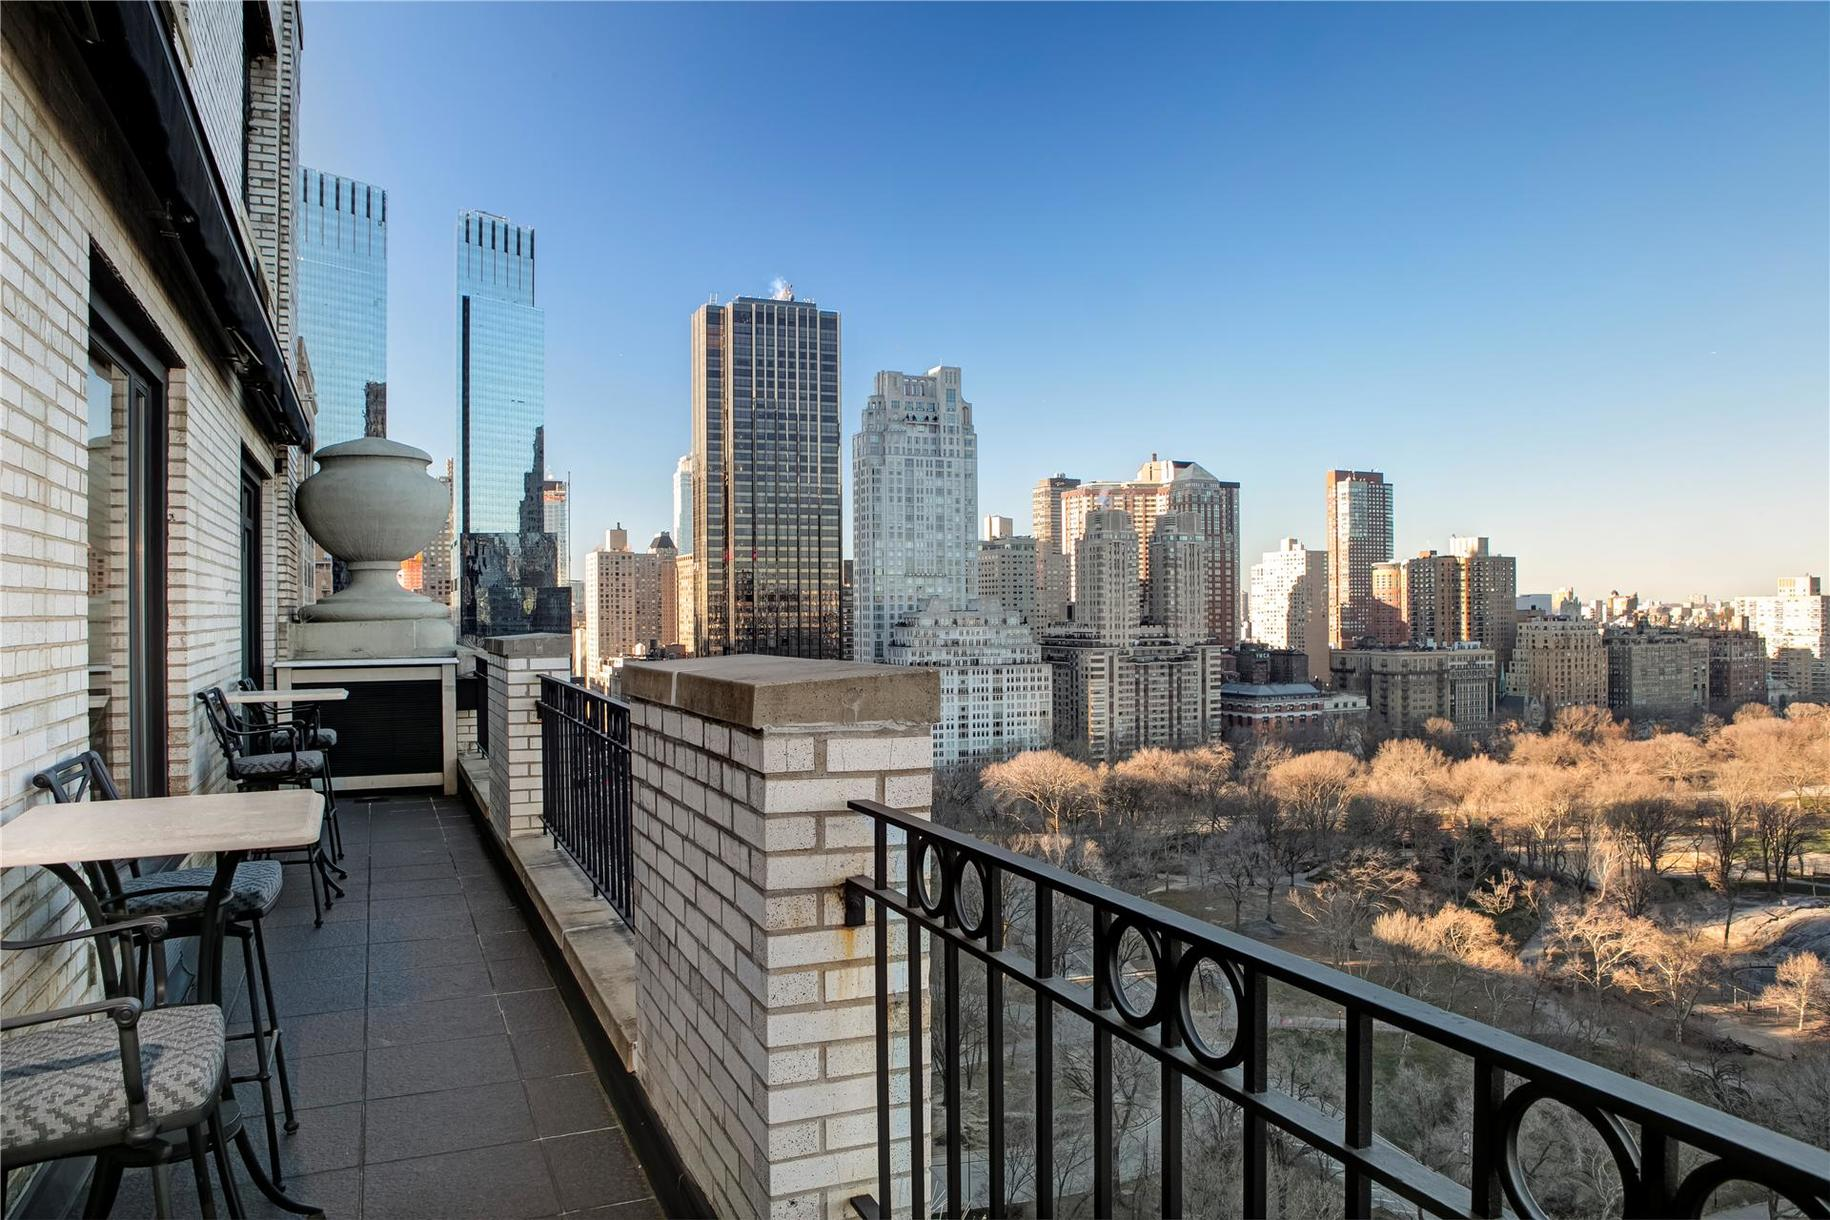 Luciano pavarotti s 10 5m pied terre and next door unit for New york balcony view